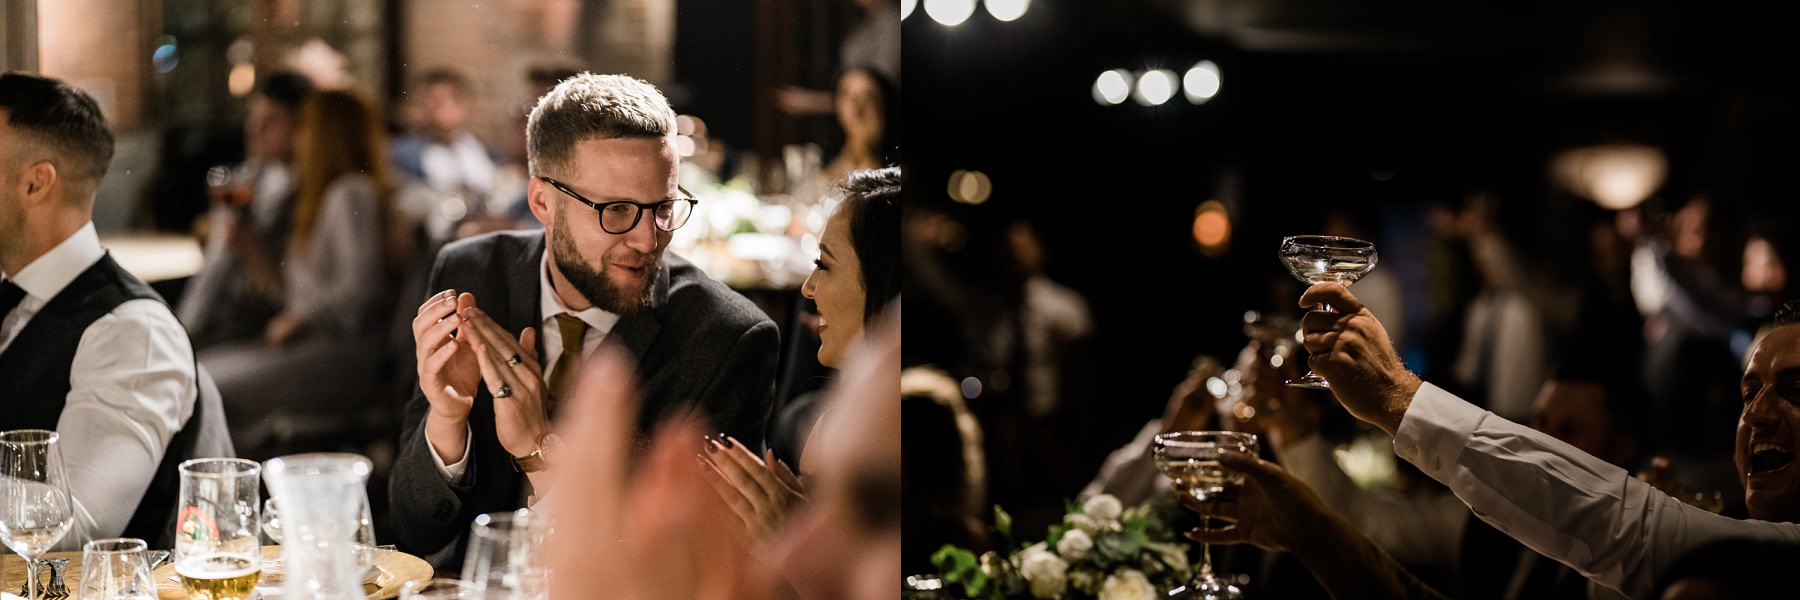 speeches Le petite Chateau wedding - Newcastle Wedding Photographer